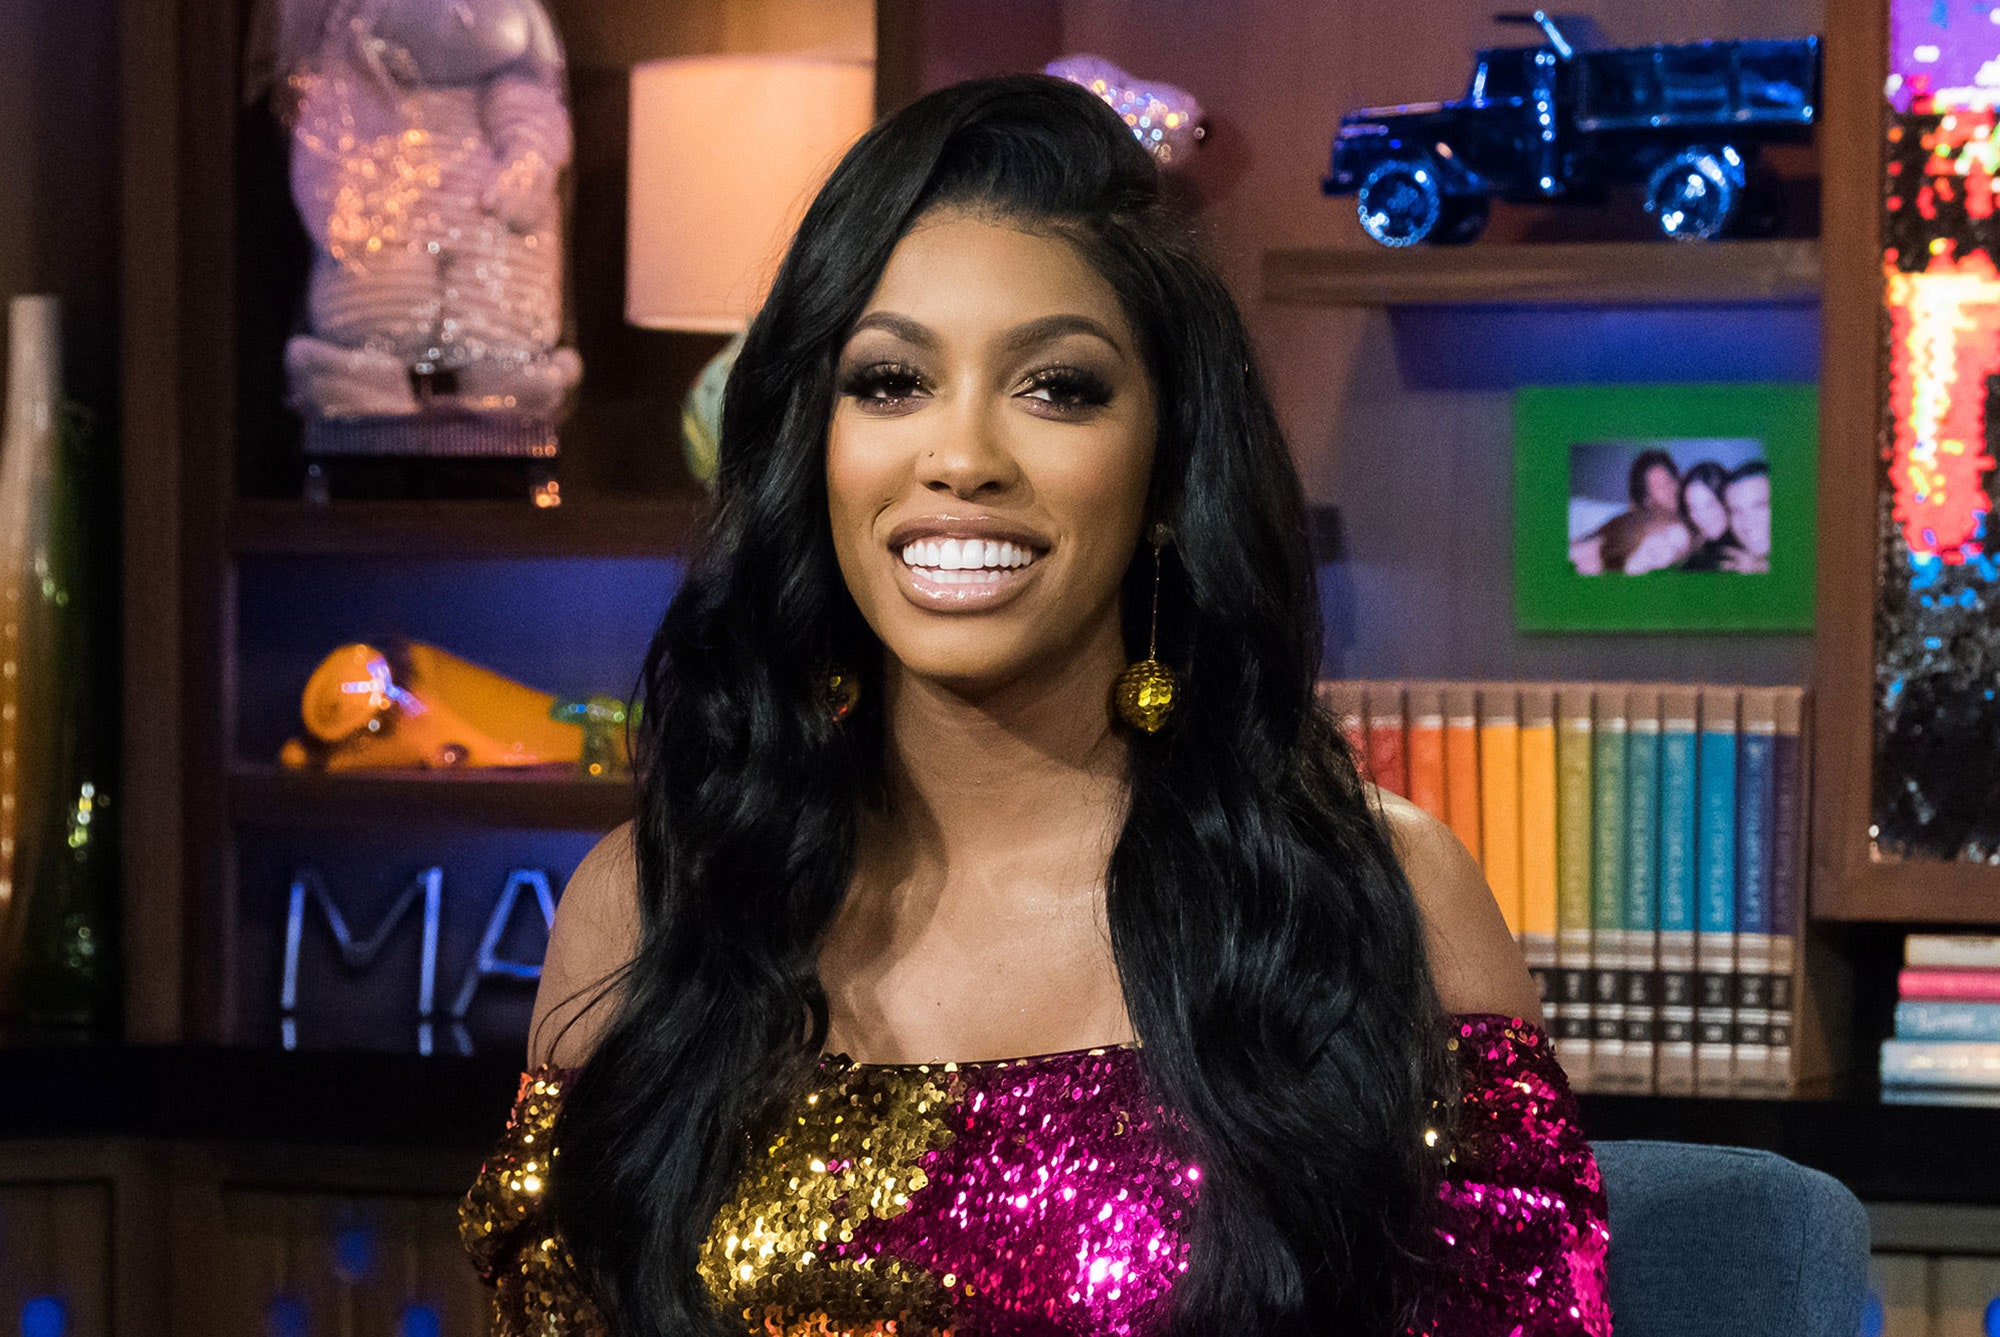 Porsha Williams Makes Fans Laugh Like There's No Tomorrow With This Video